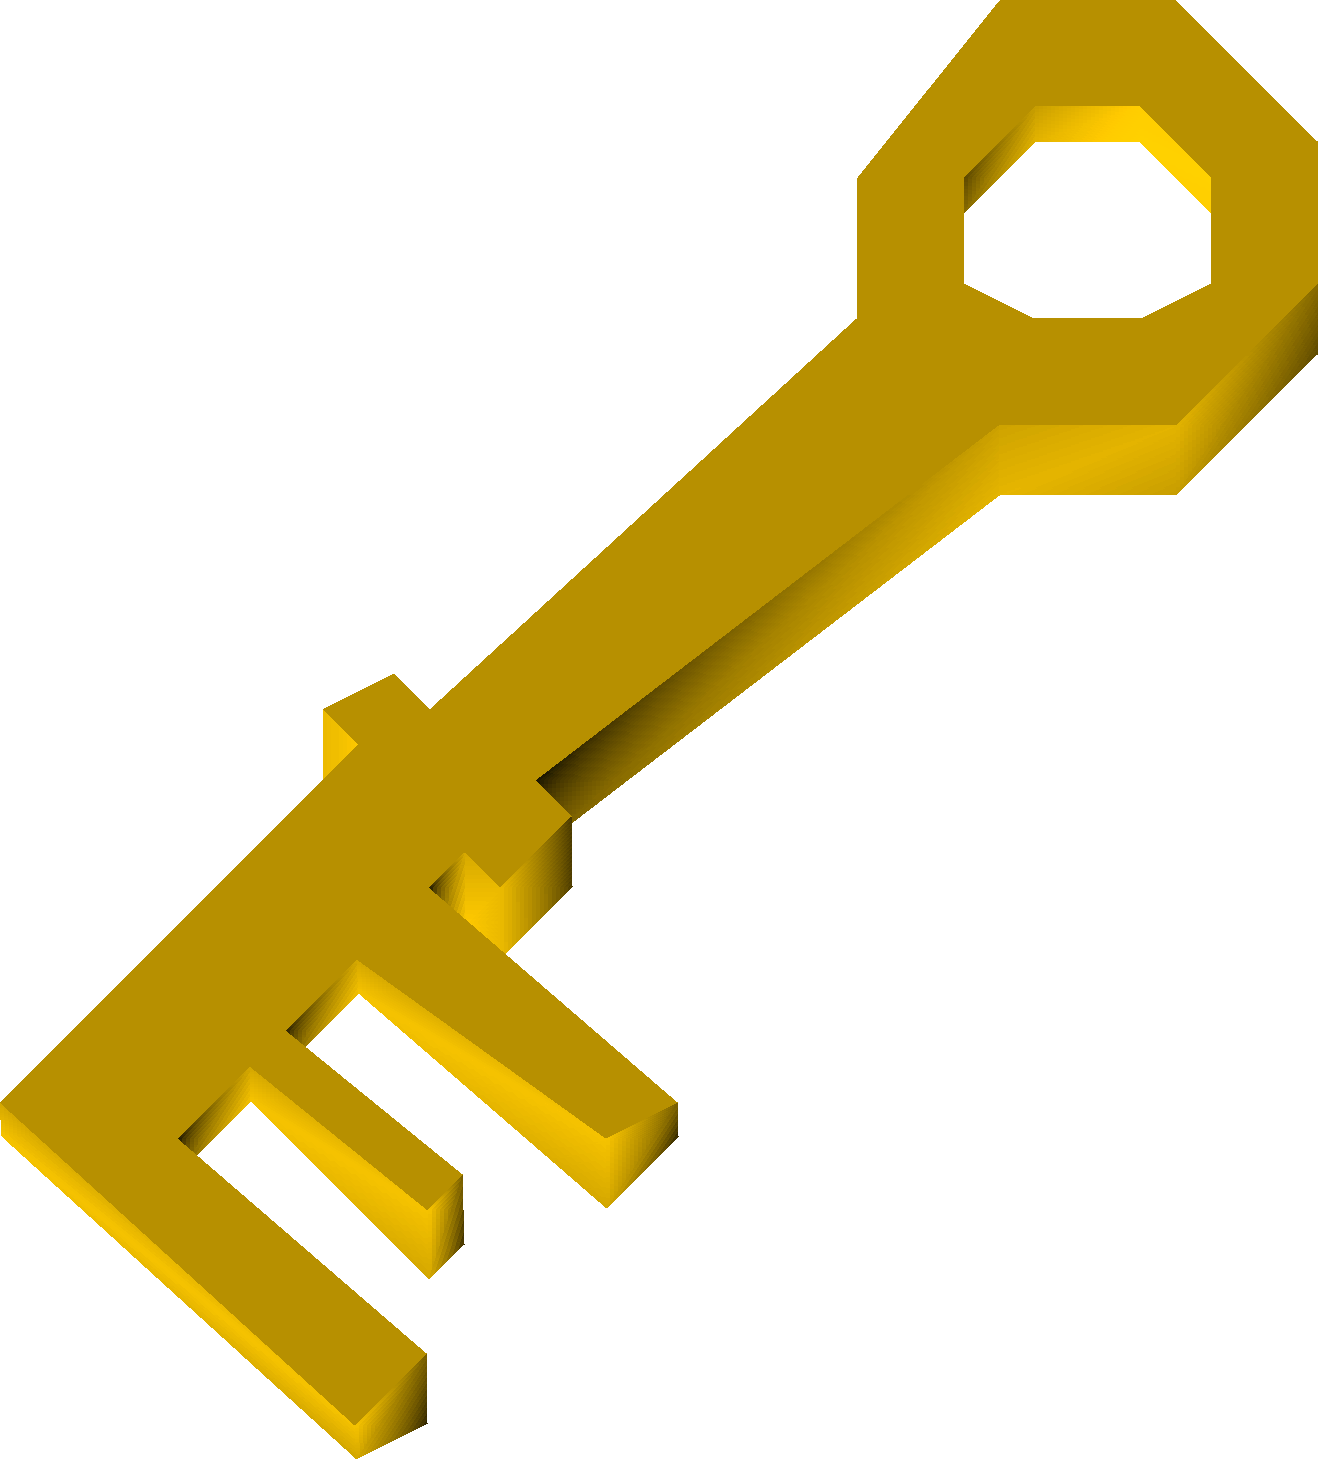 New key detail